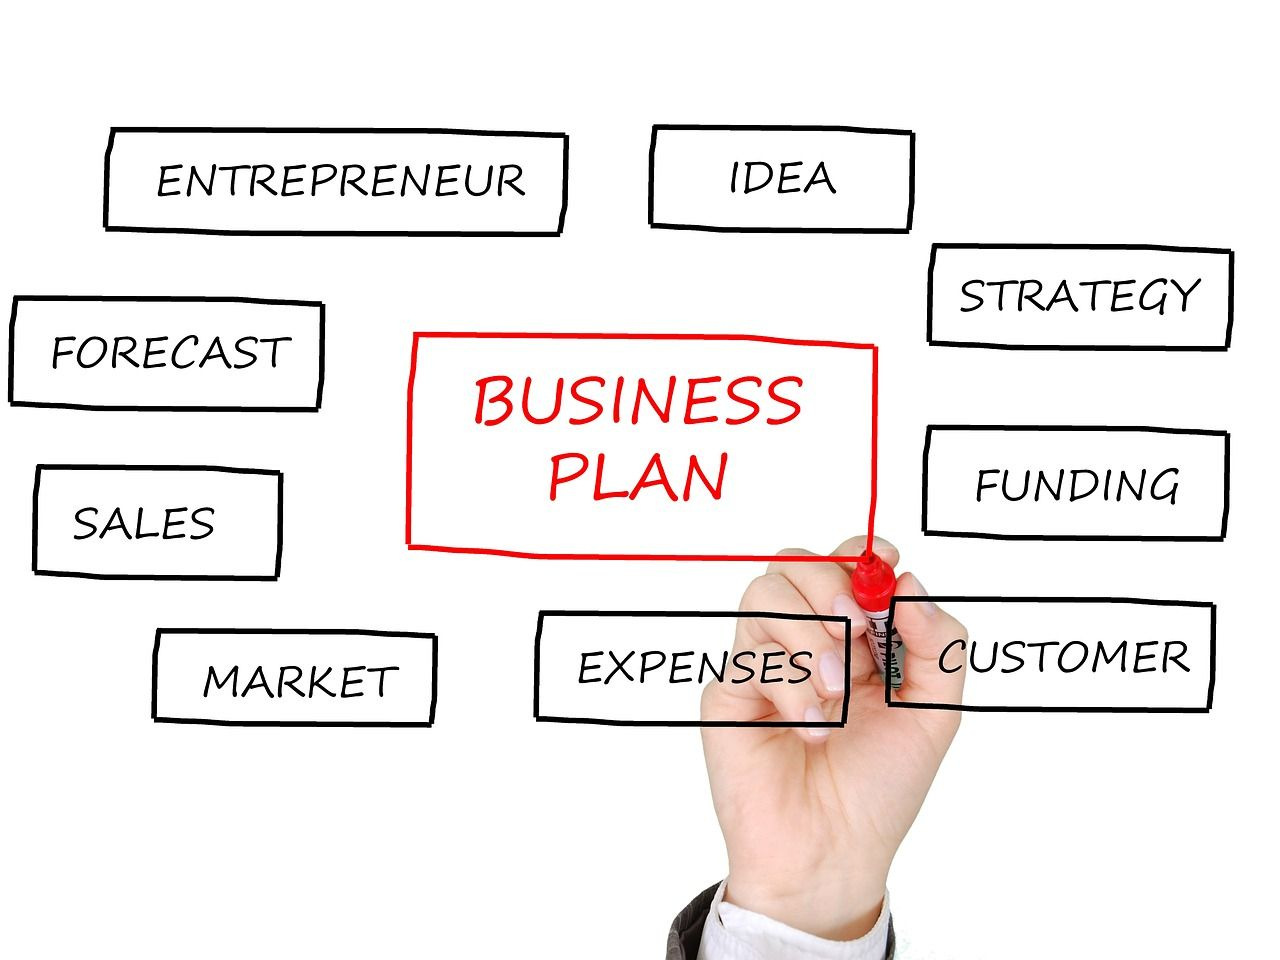 5 Things to Include in a Spa Business Plan Massagebypro